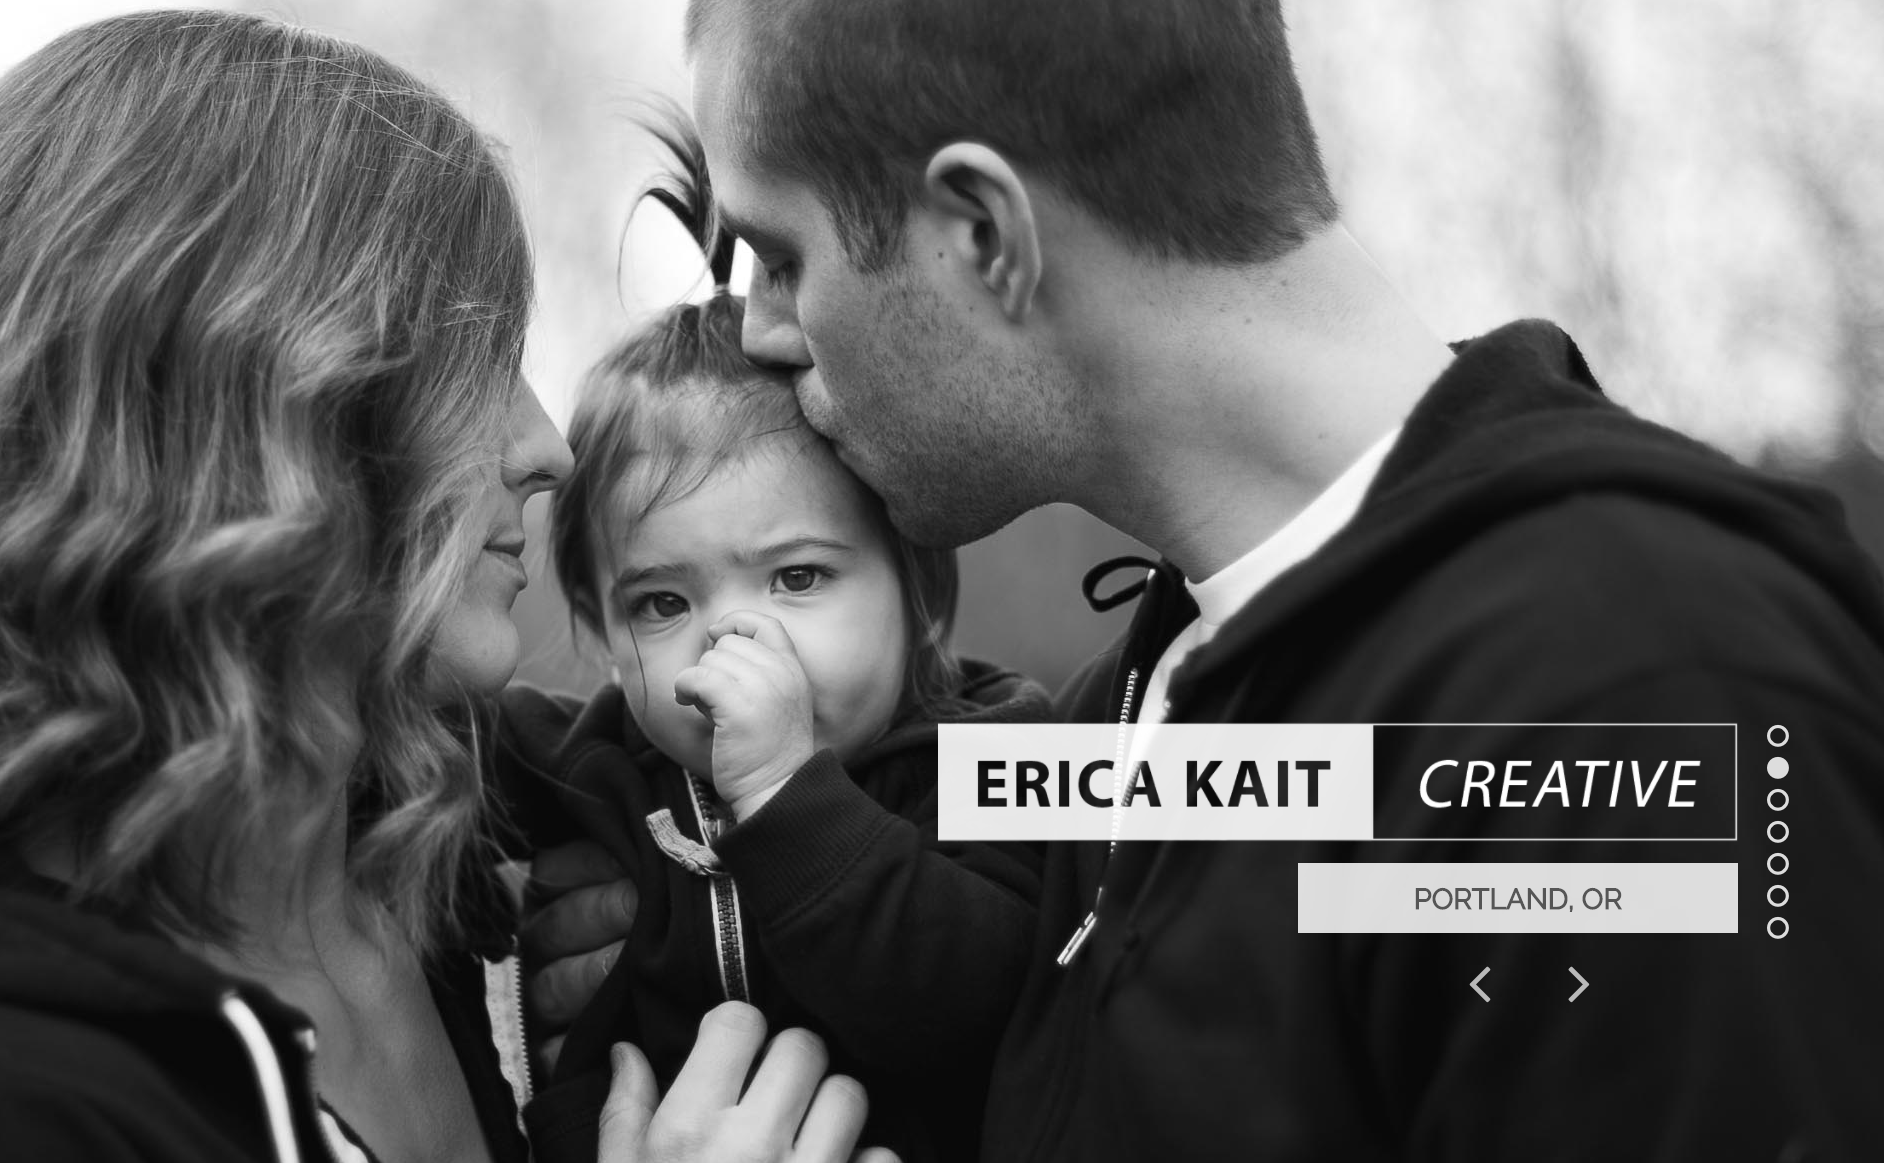 Erica Kait Creative website cover image